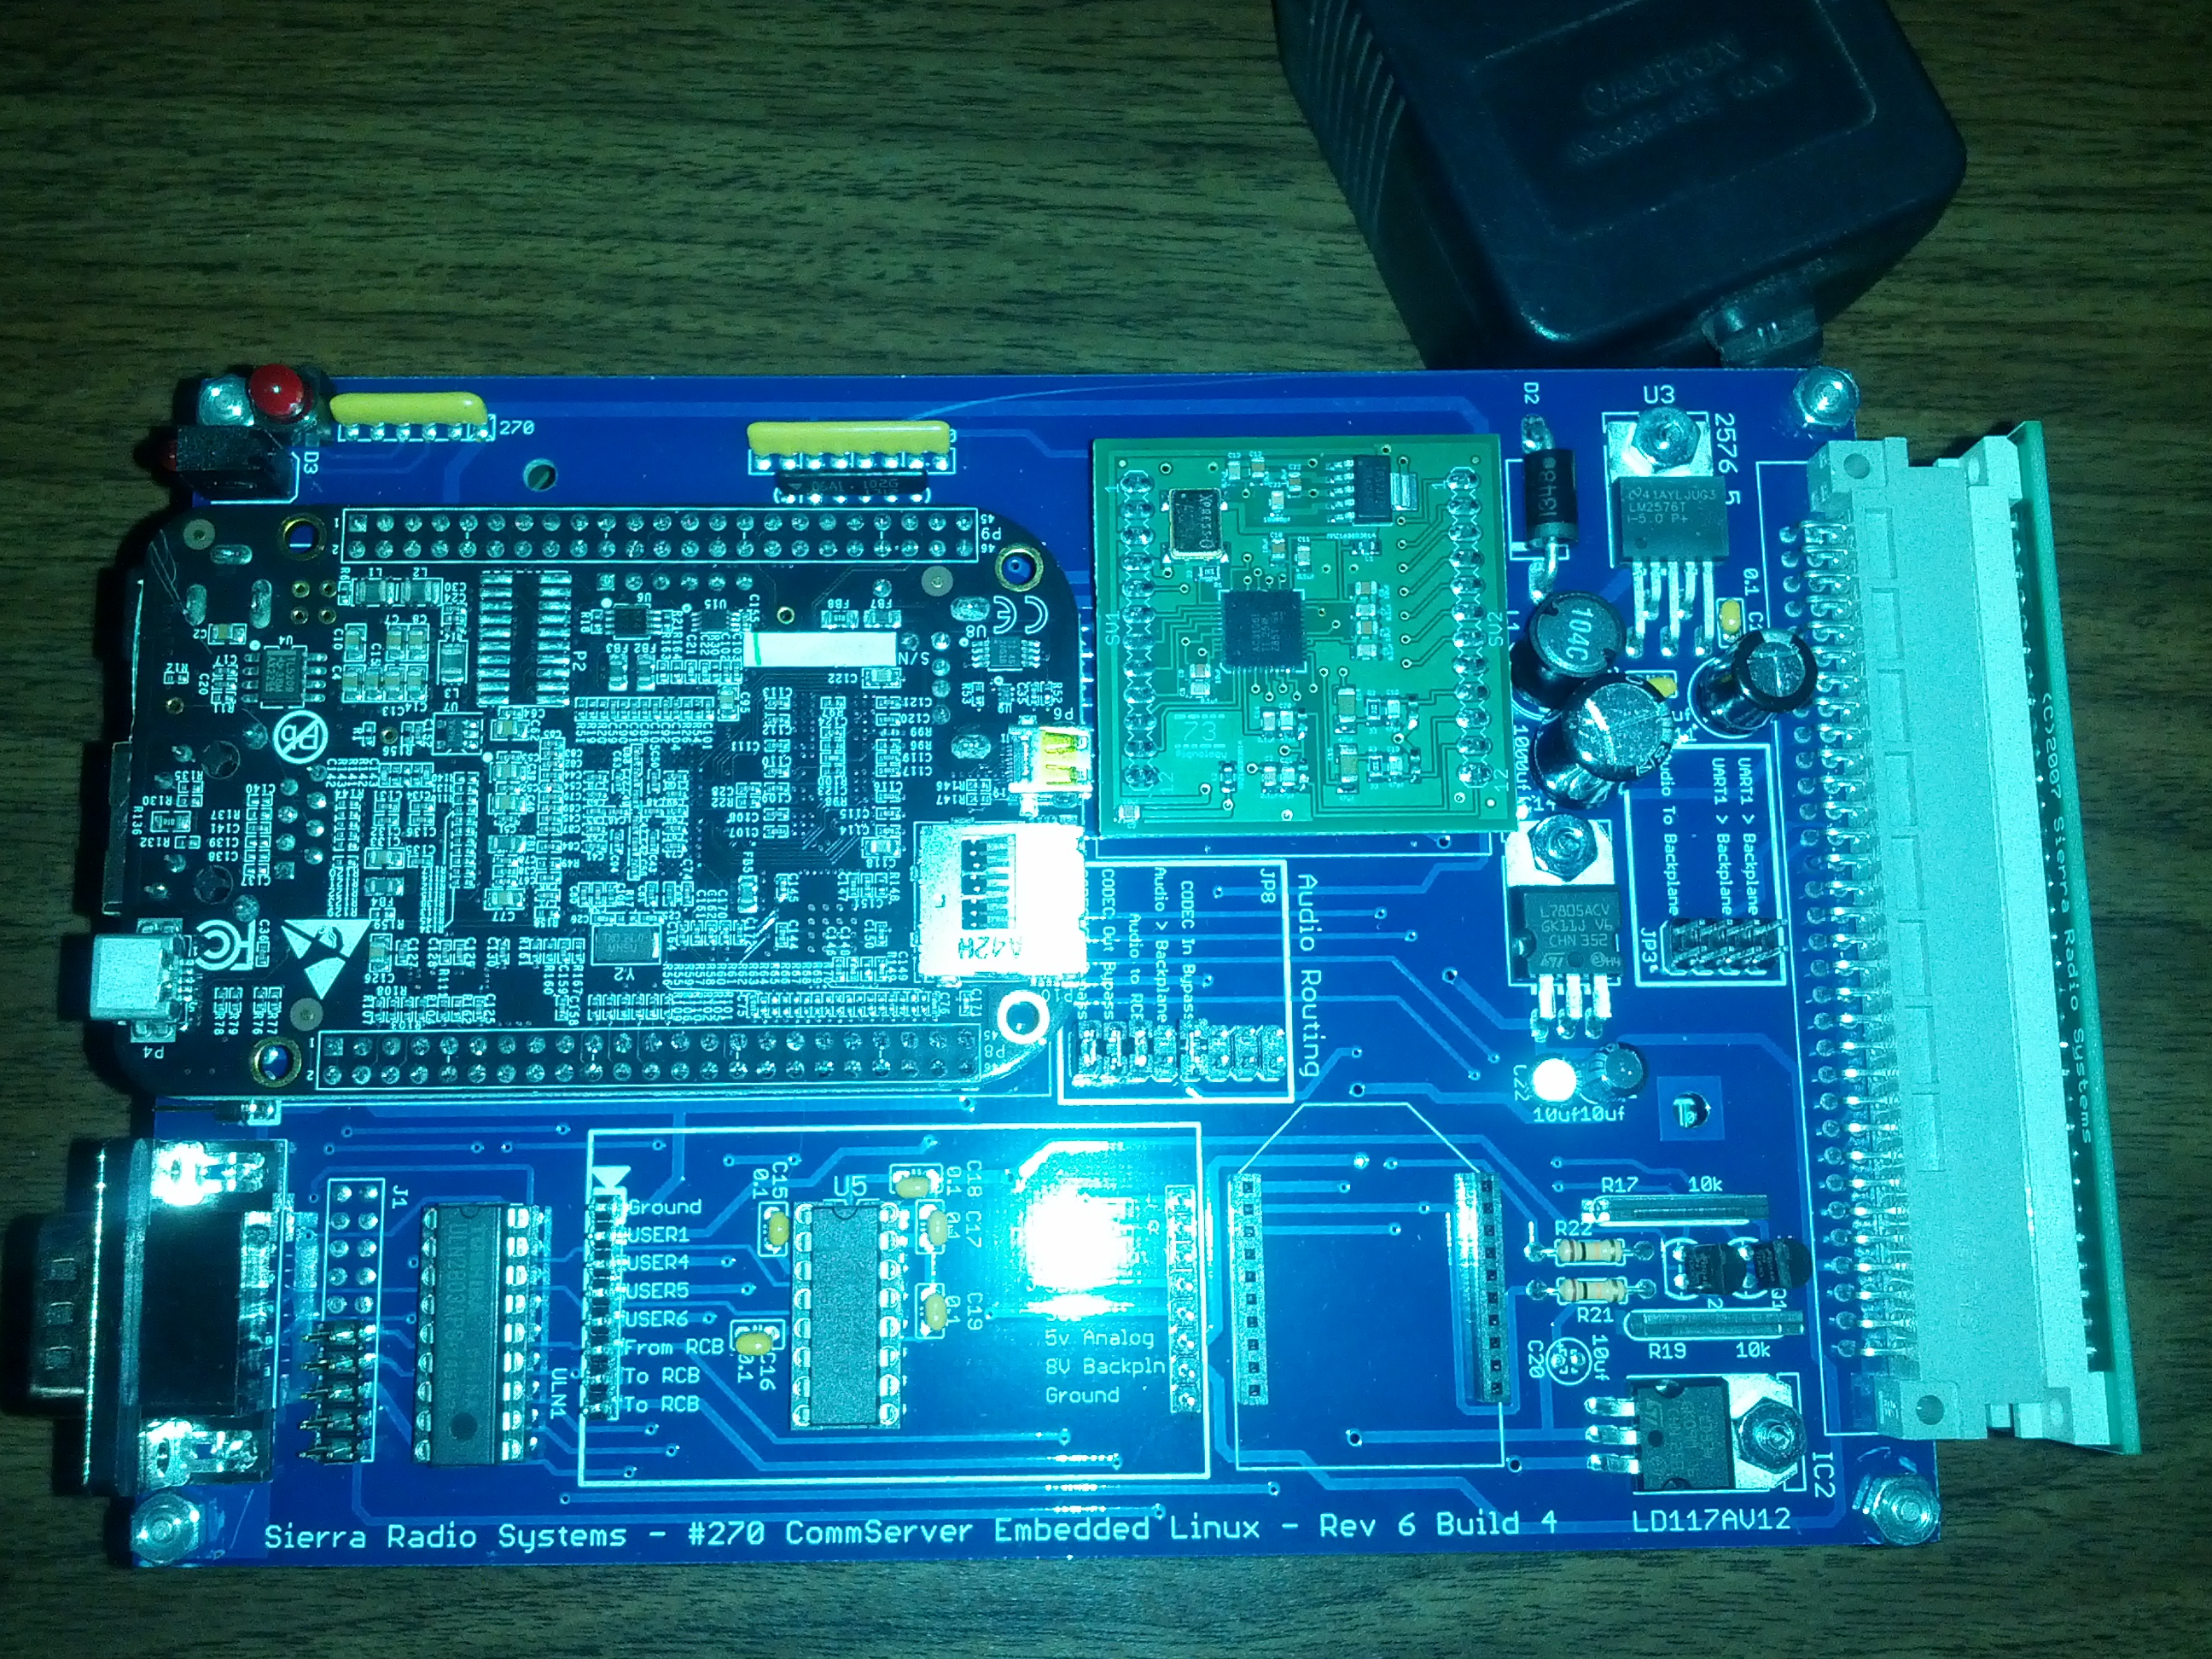 New beta VoIP board